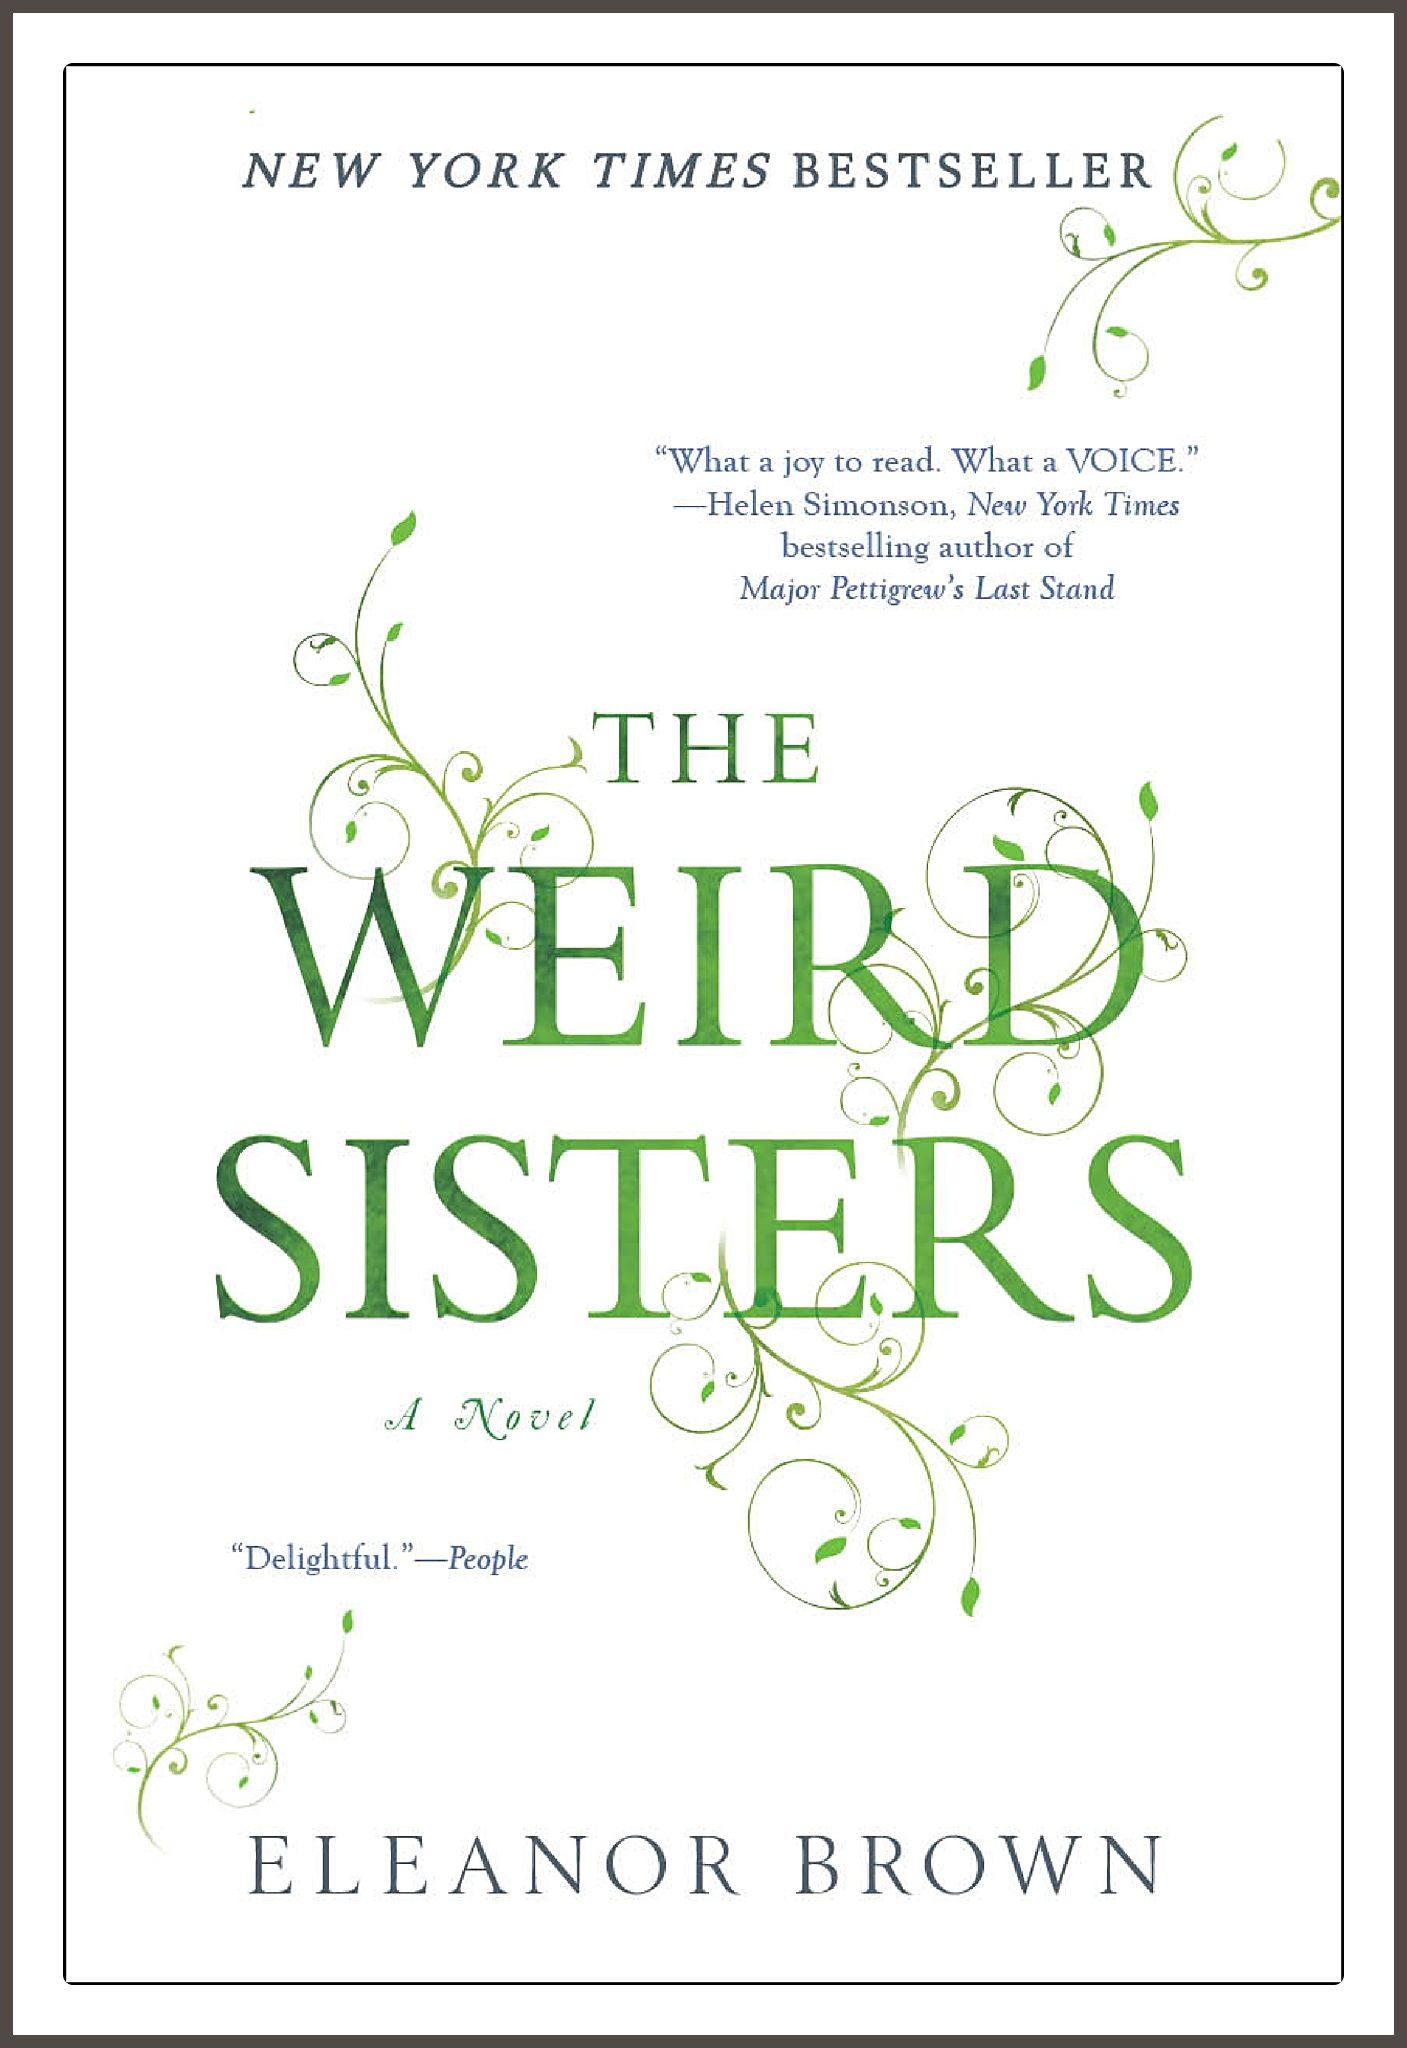 Book club pick this is a moving story of three sisters